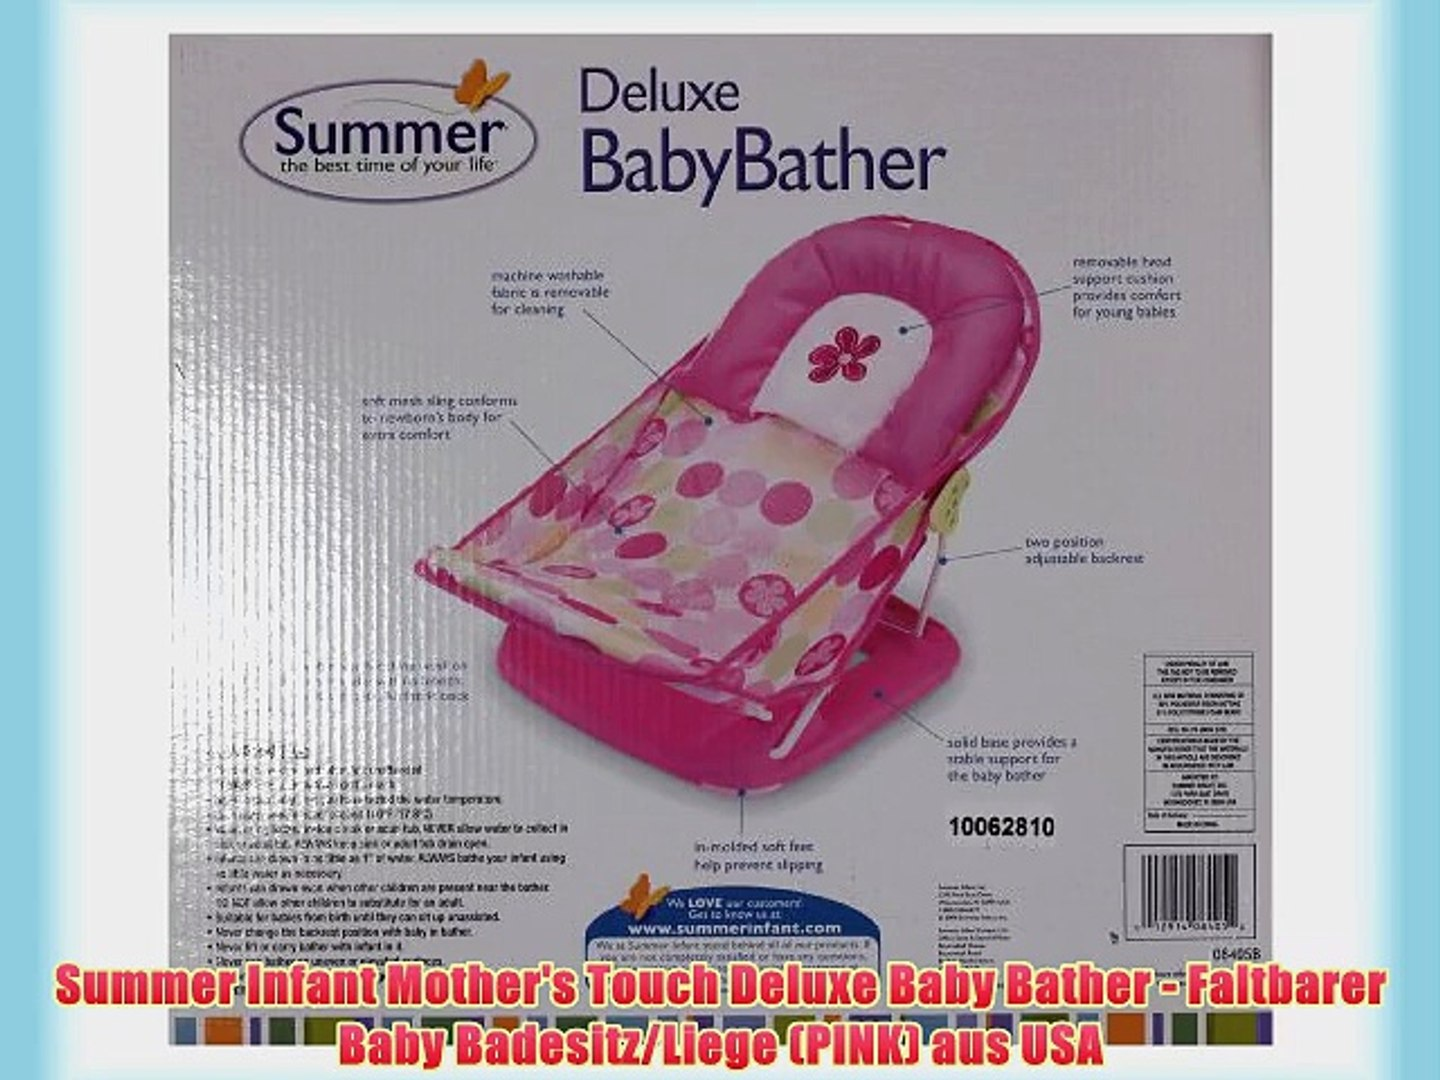 Summer Infant Mother S Touch Deluxe Baby Bather Faltbarer Baby Badesitz Liege Pink Aus Video Dailymotion